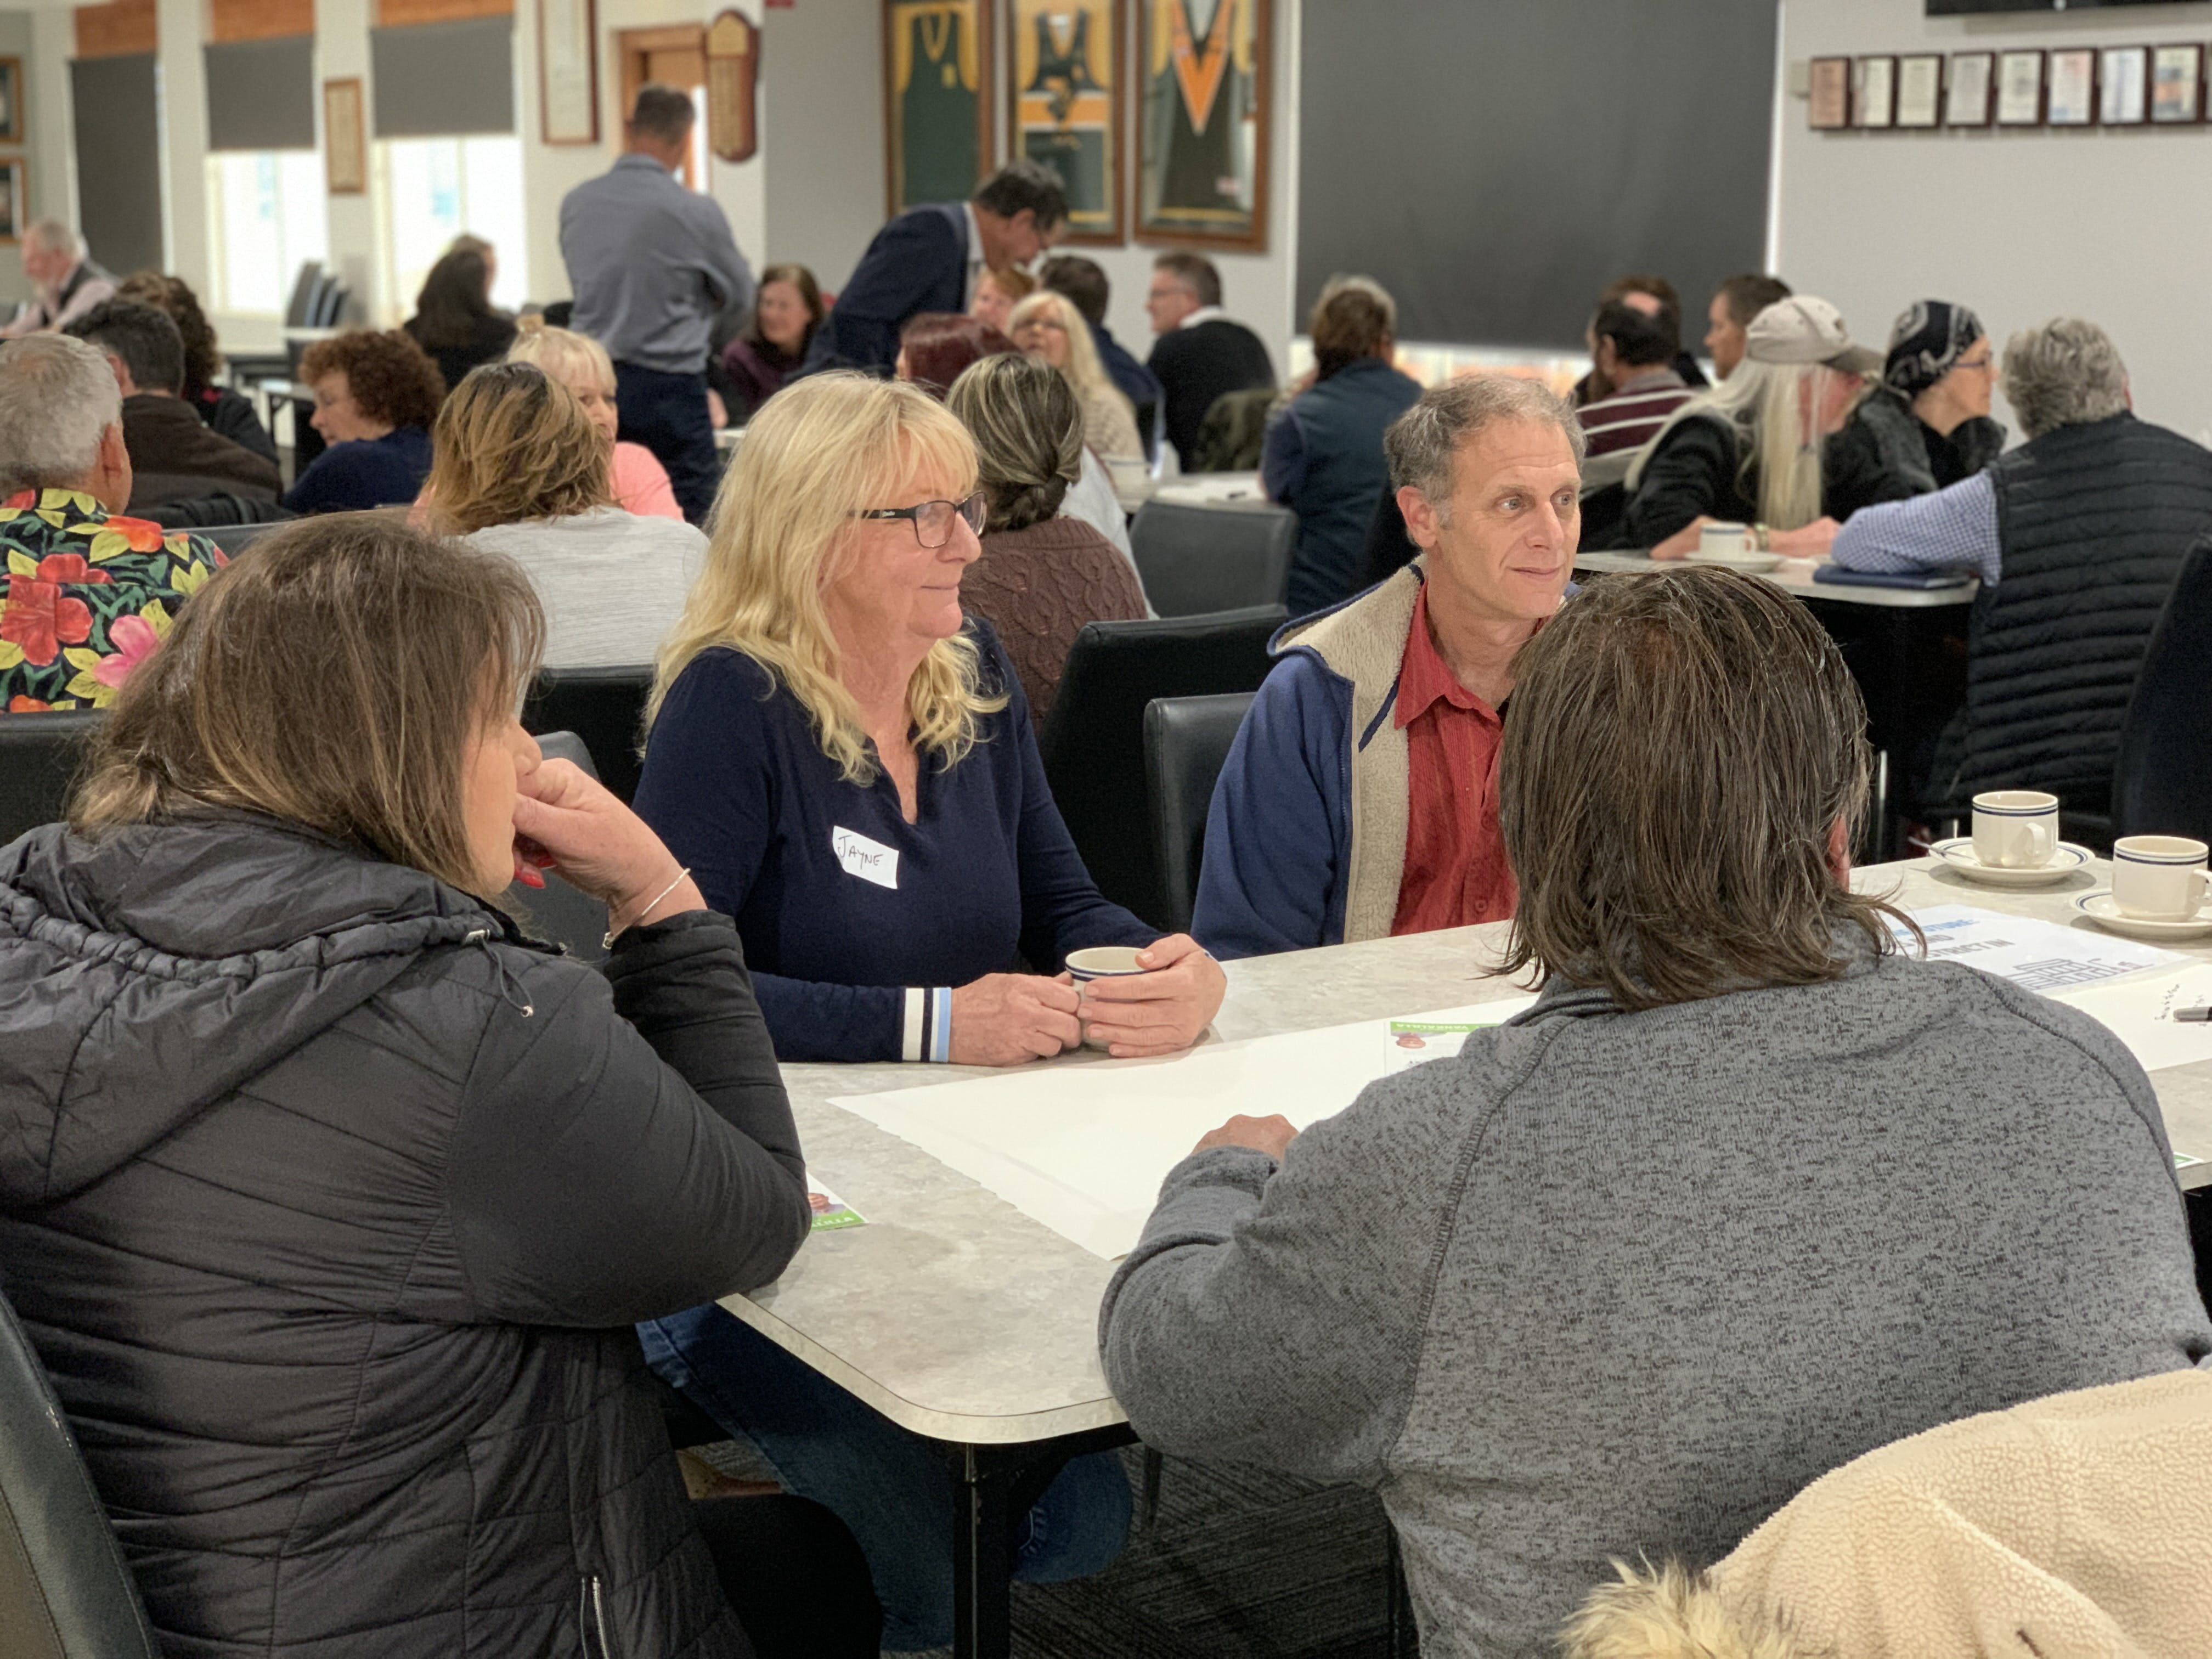 Myponga Township Community Forum